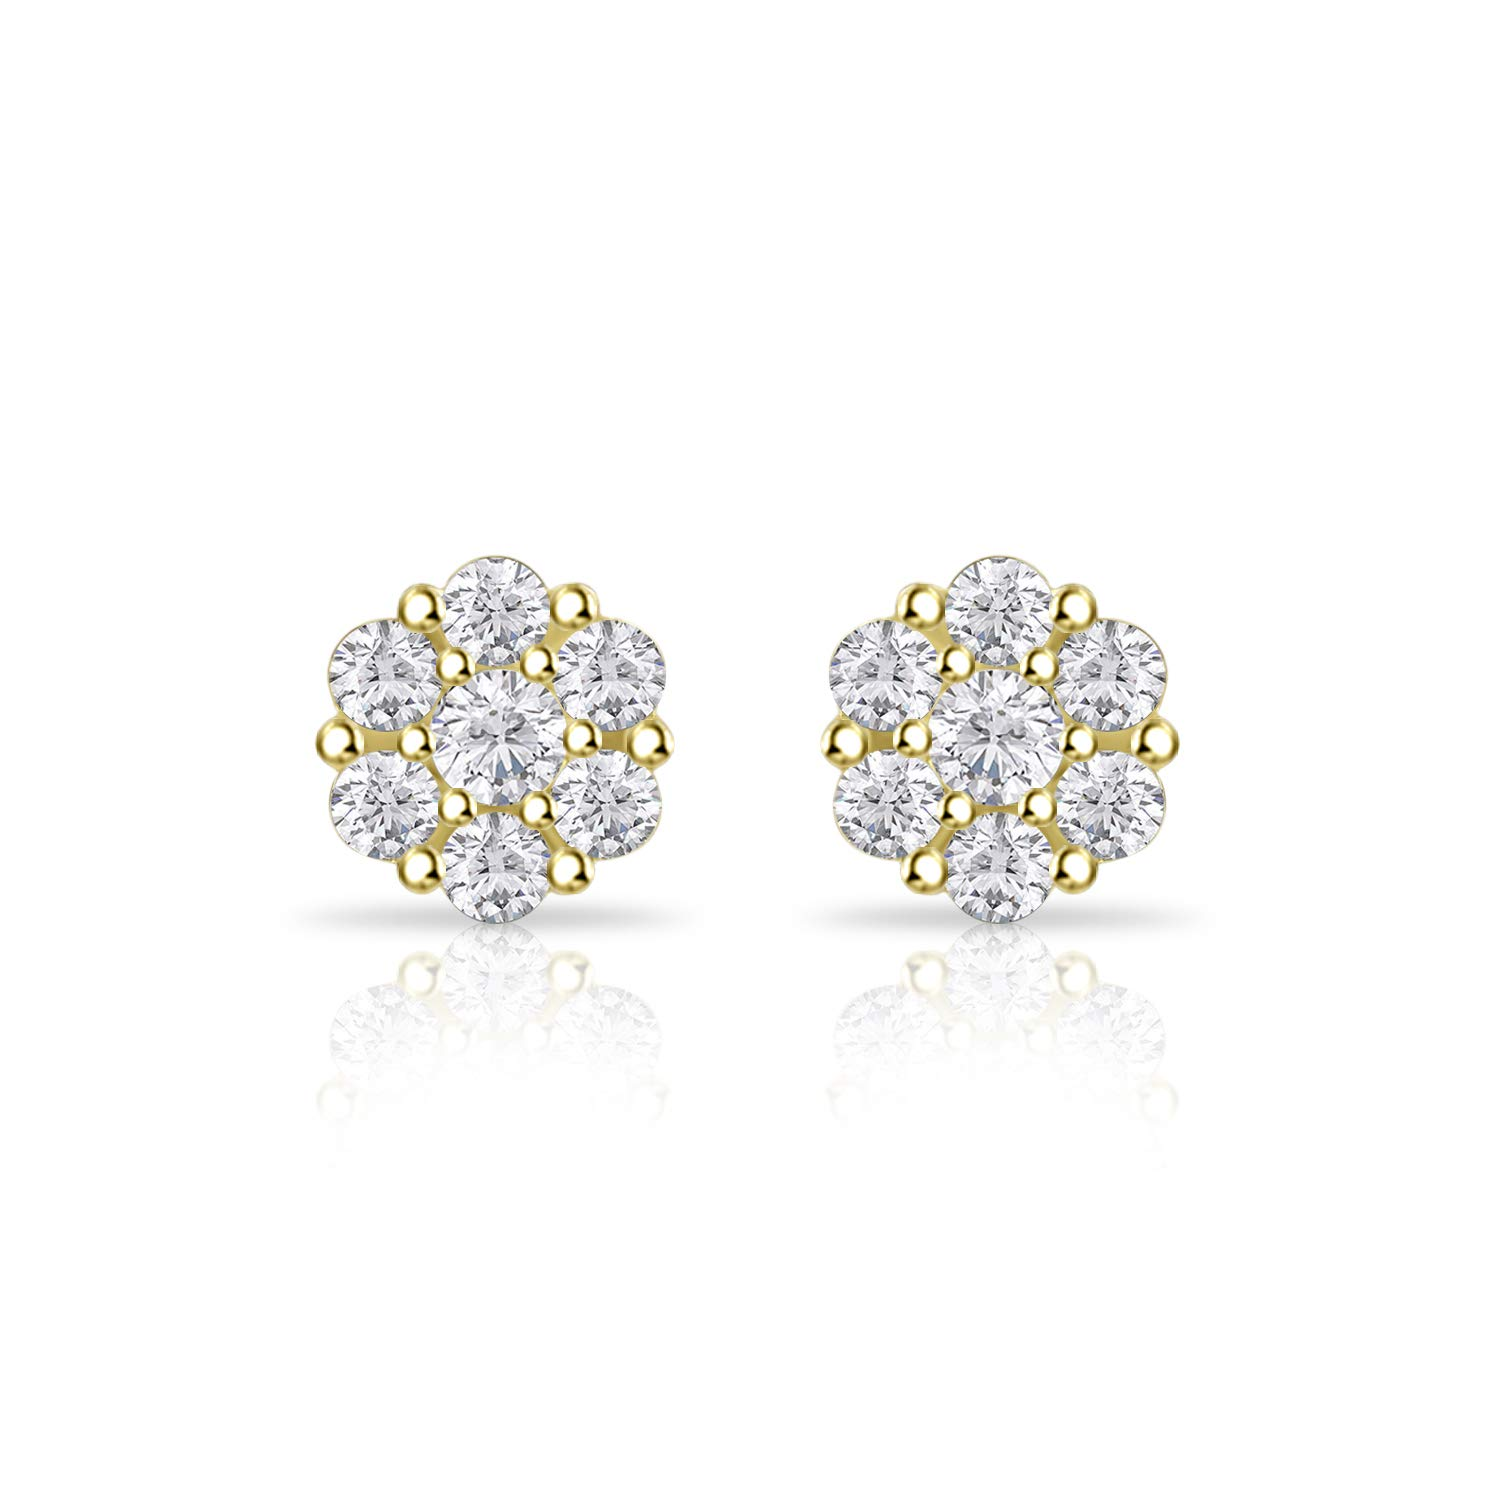 Bridal Earring Gift For Her,14k White Gold//Yellow Gold Plated Finish Silver Dew 6mm CZ Diamond Earring,Cluster Earring Stud Earring Flower Earring